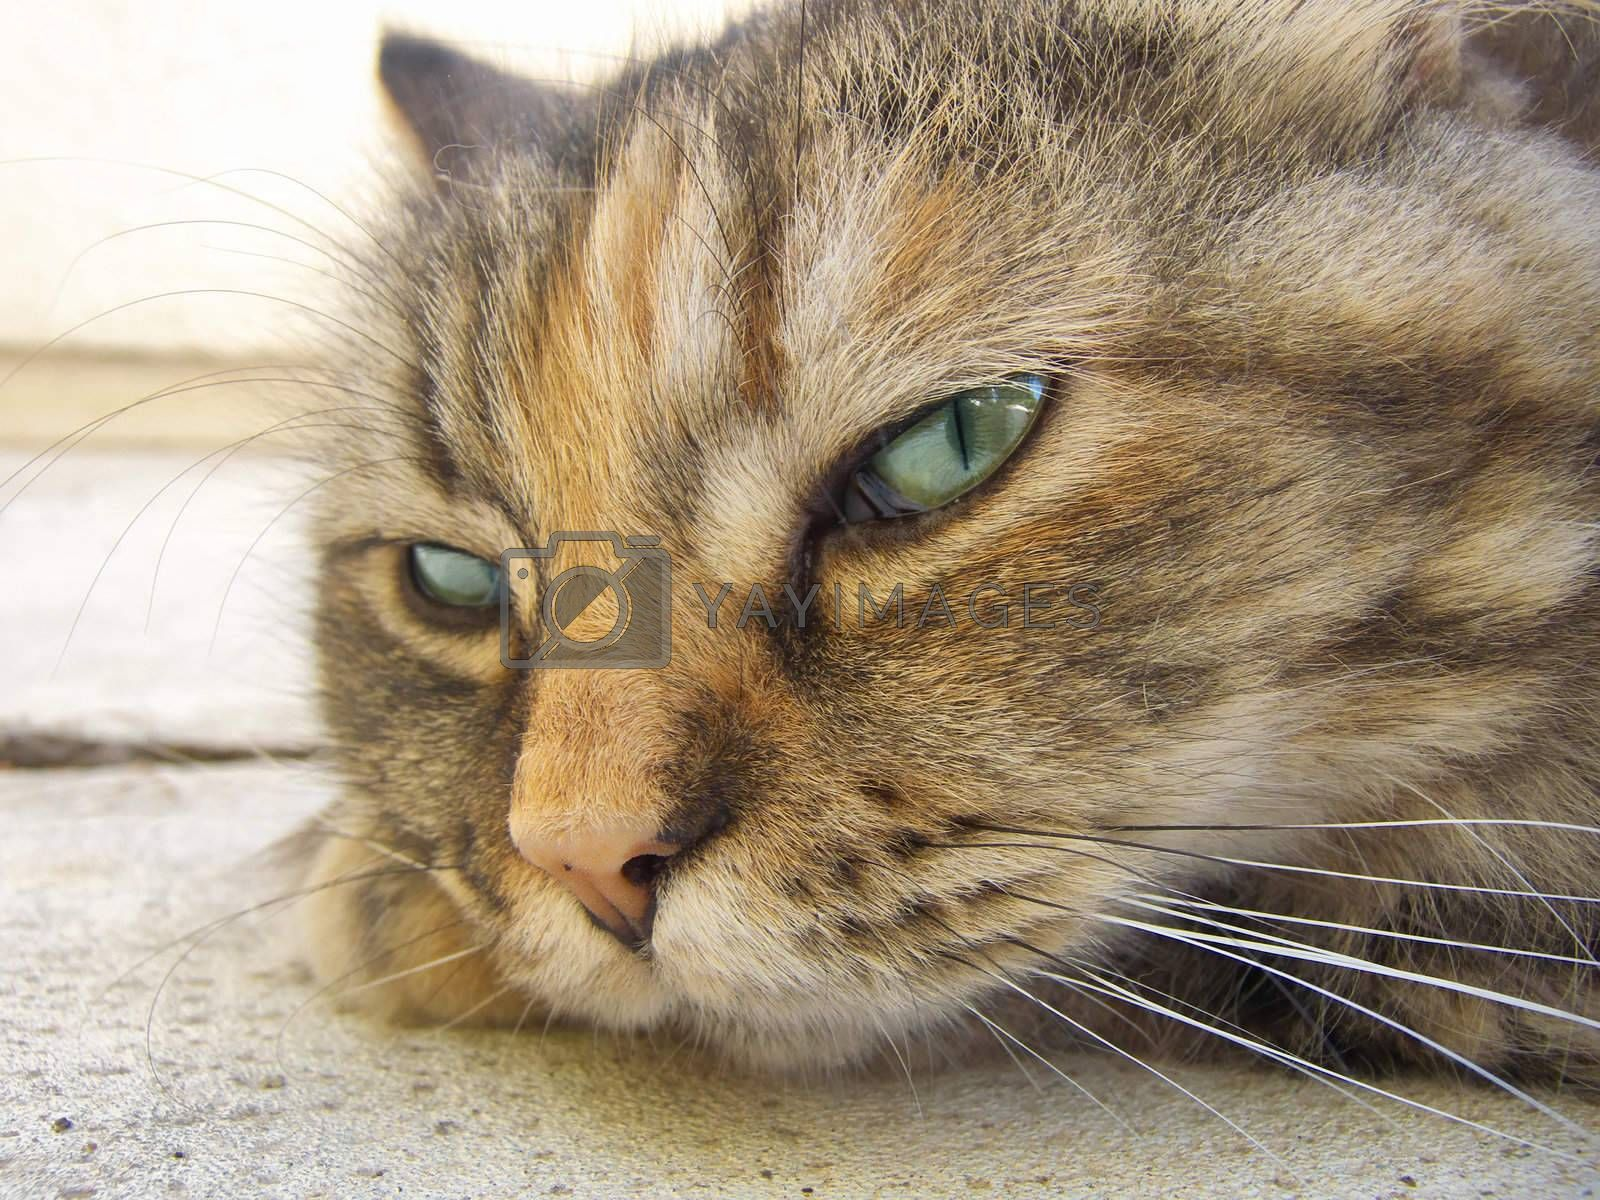 close-up image of a Persian cat with green eyes